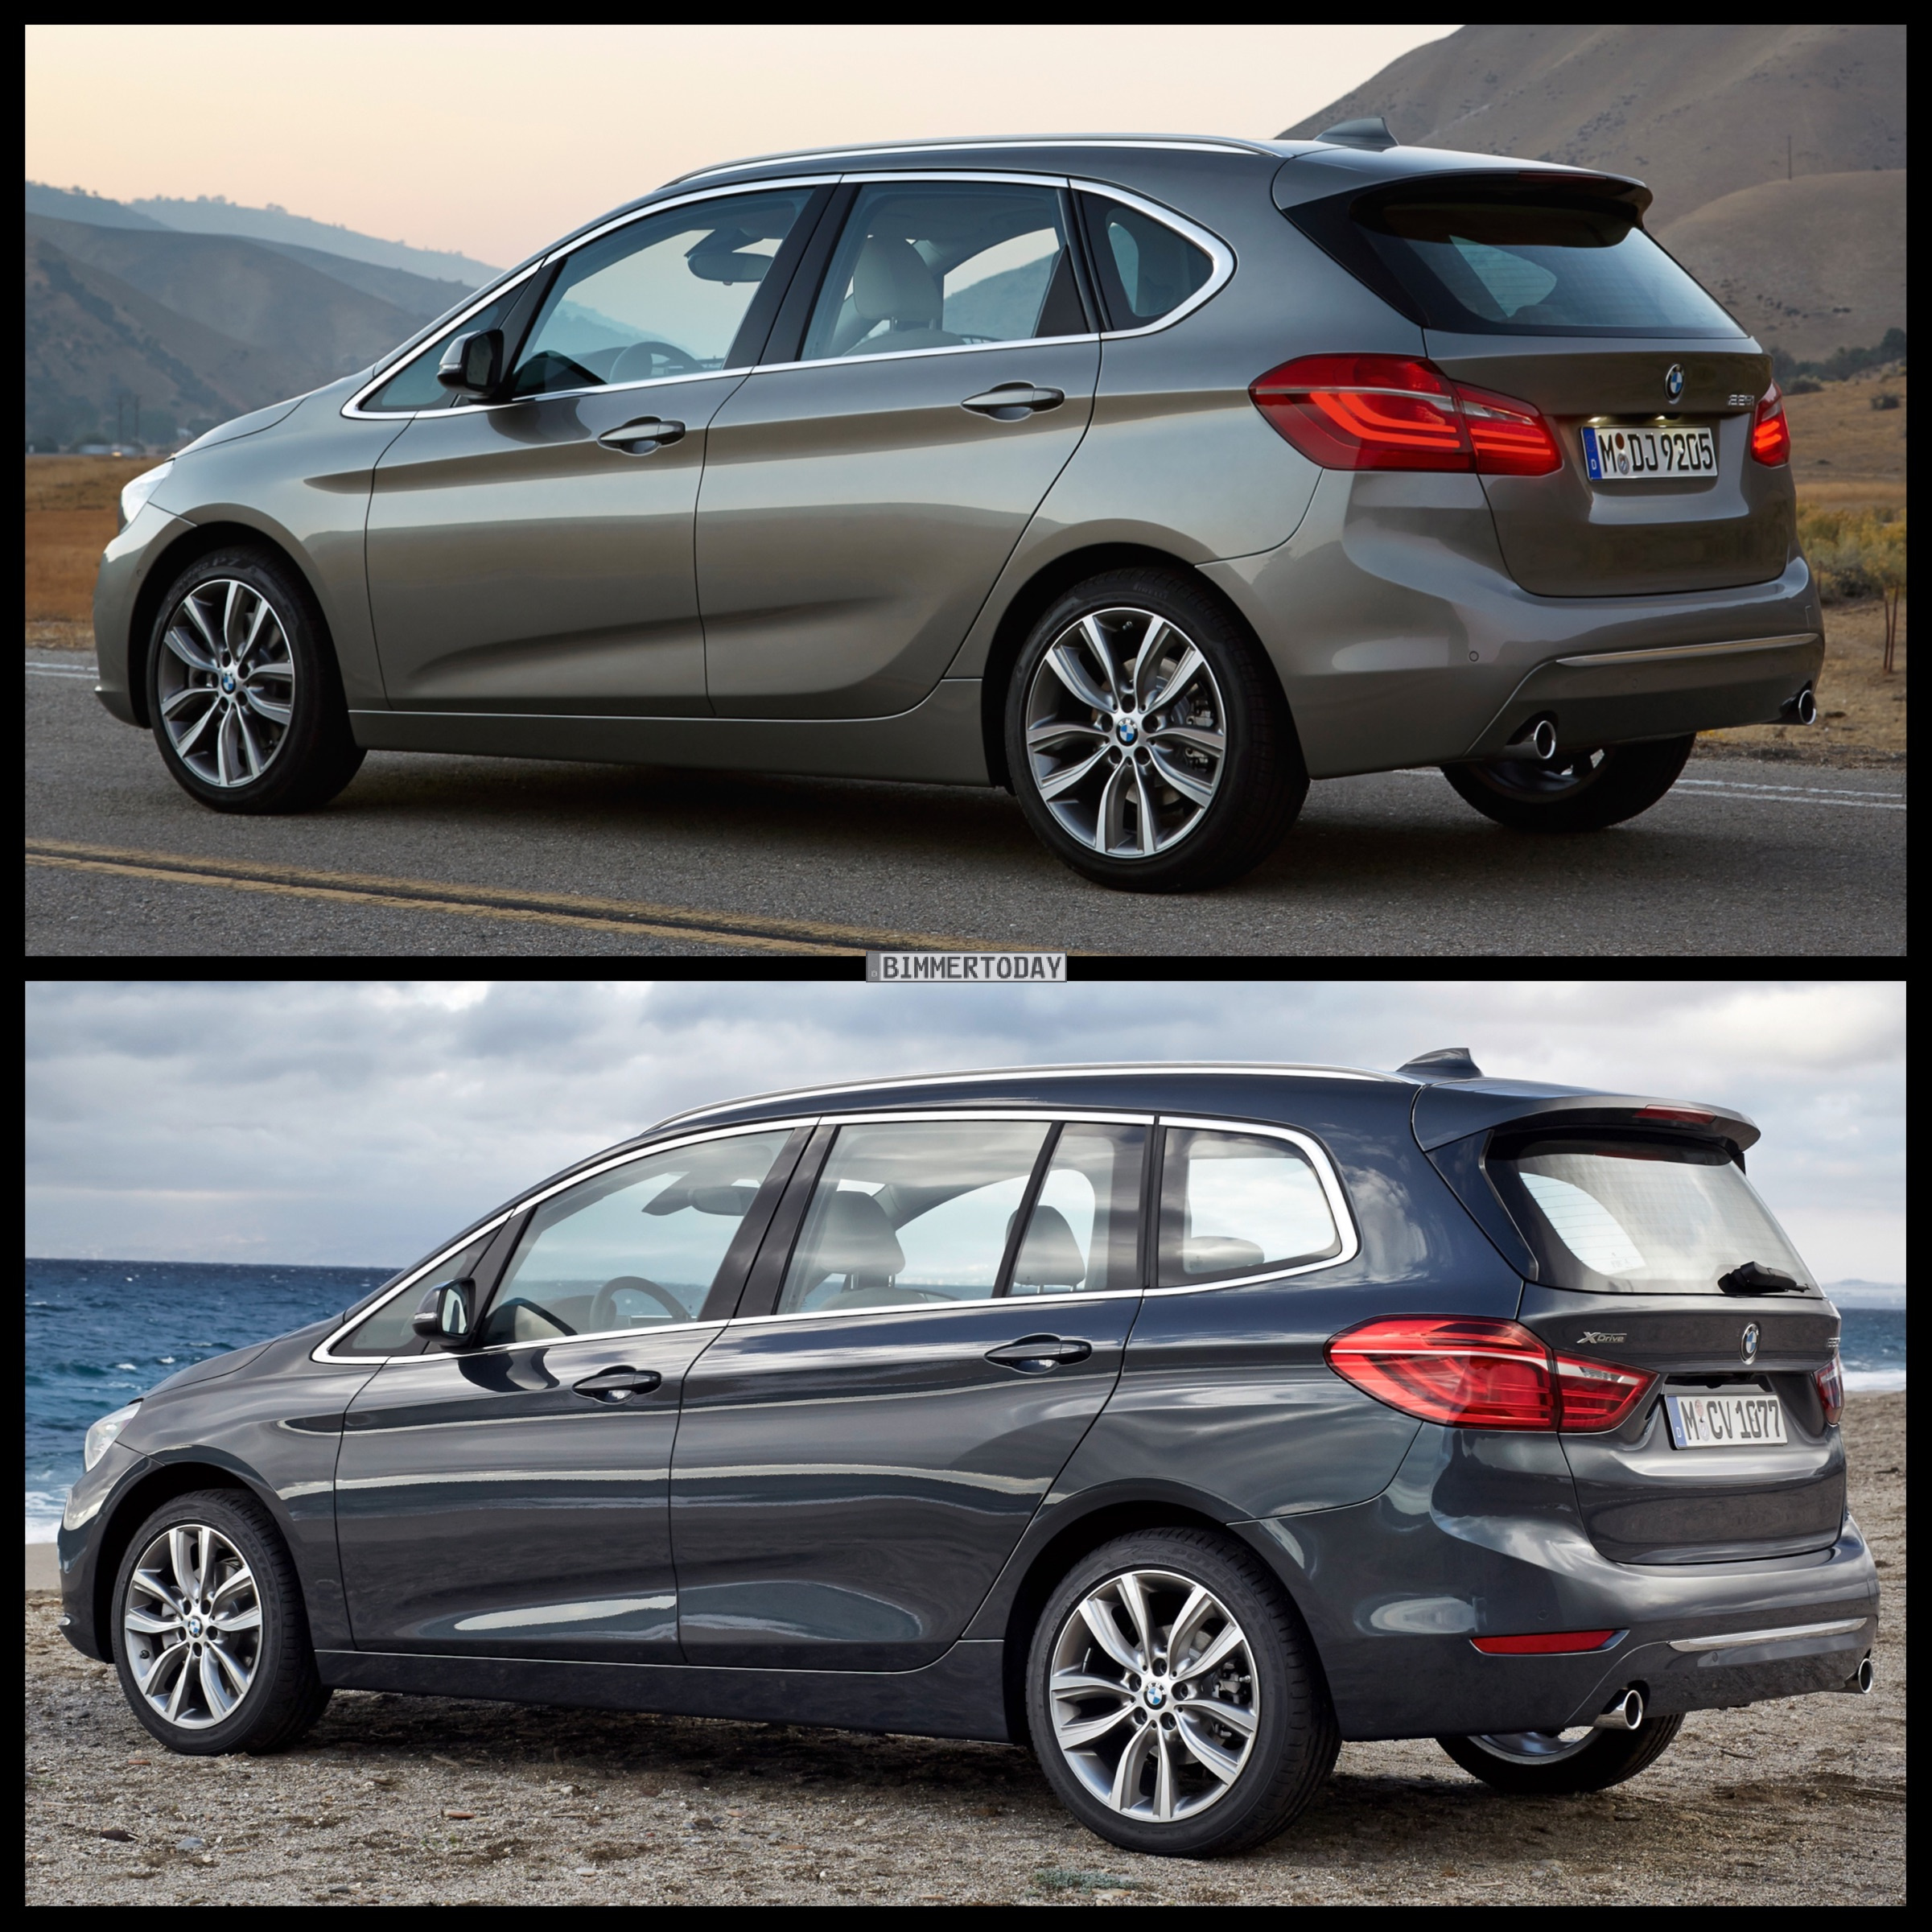 bmw 2 series gran tourer vs bmw 2 series active tourer. Black Bedroom Furniture Sets. Home Design Ideas